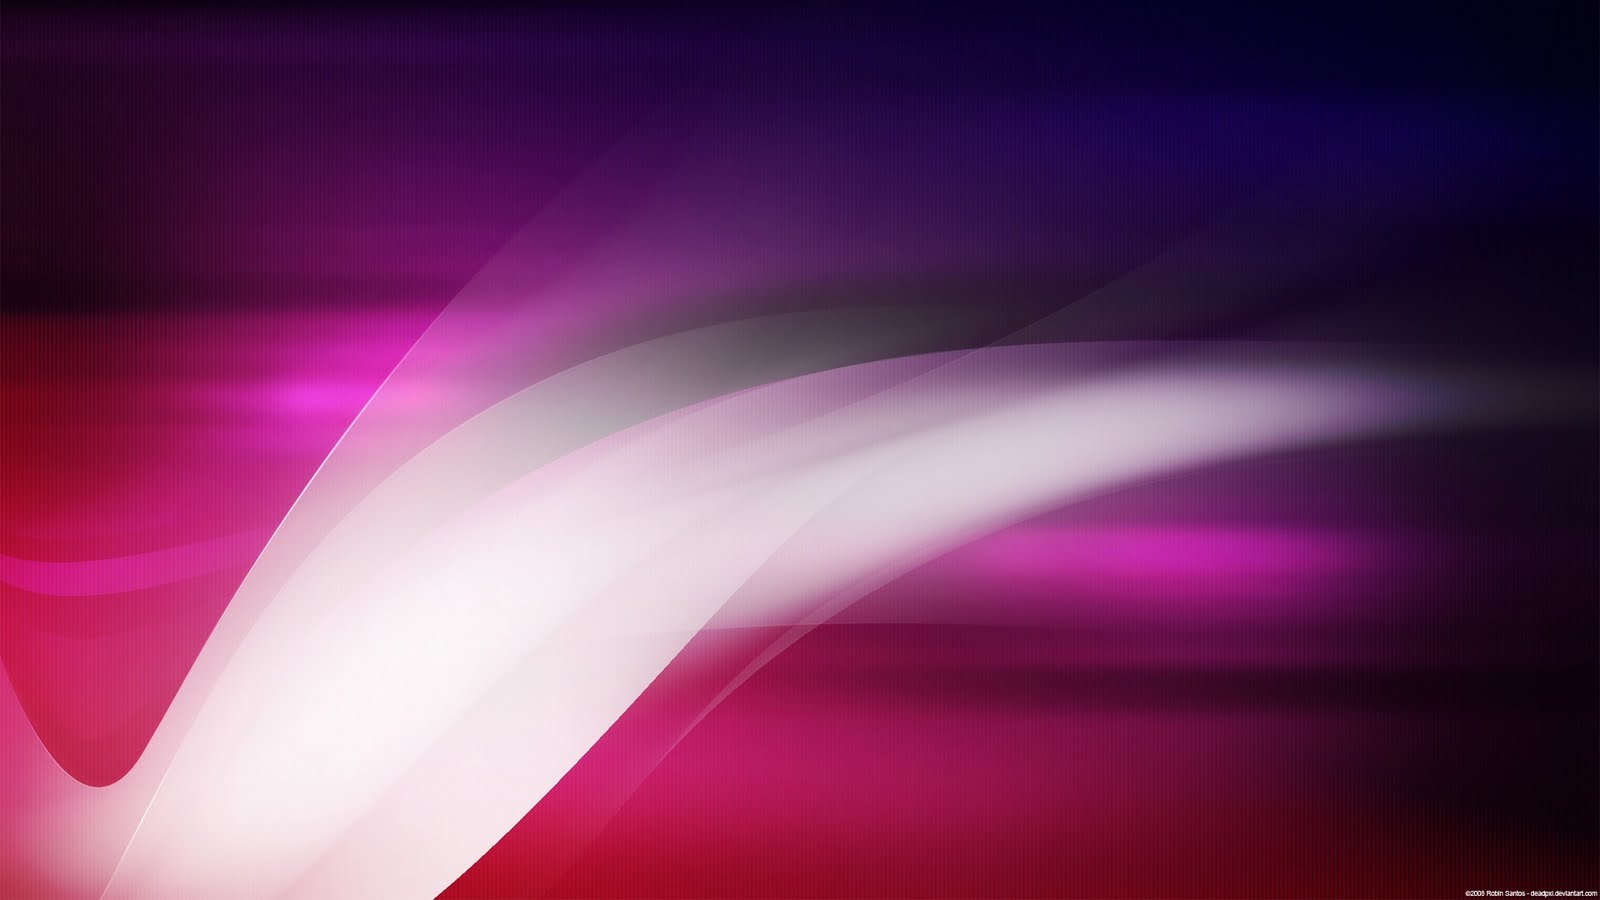 ALL-IN-ONE WALLPAPERS: Full HD Abstract Wallpapers 1080p